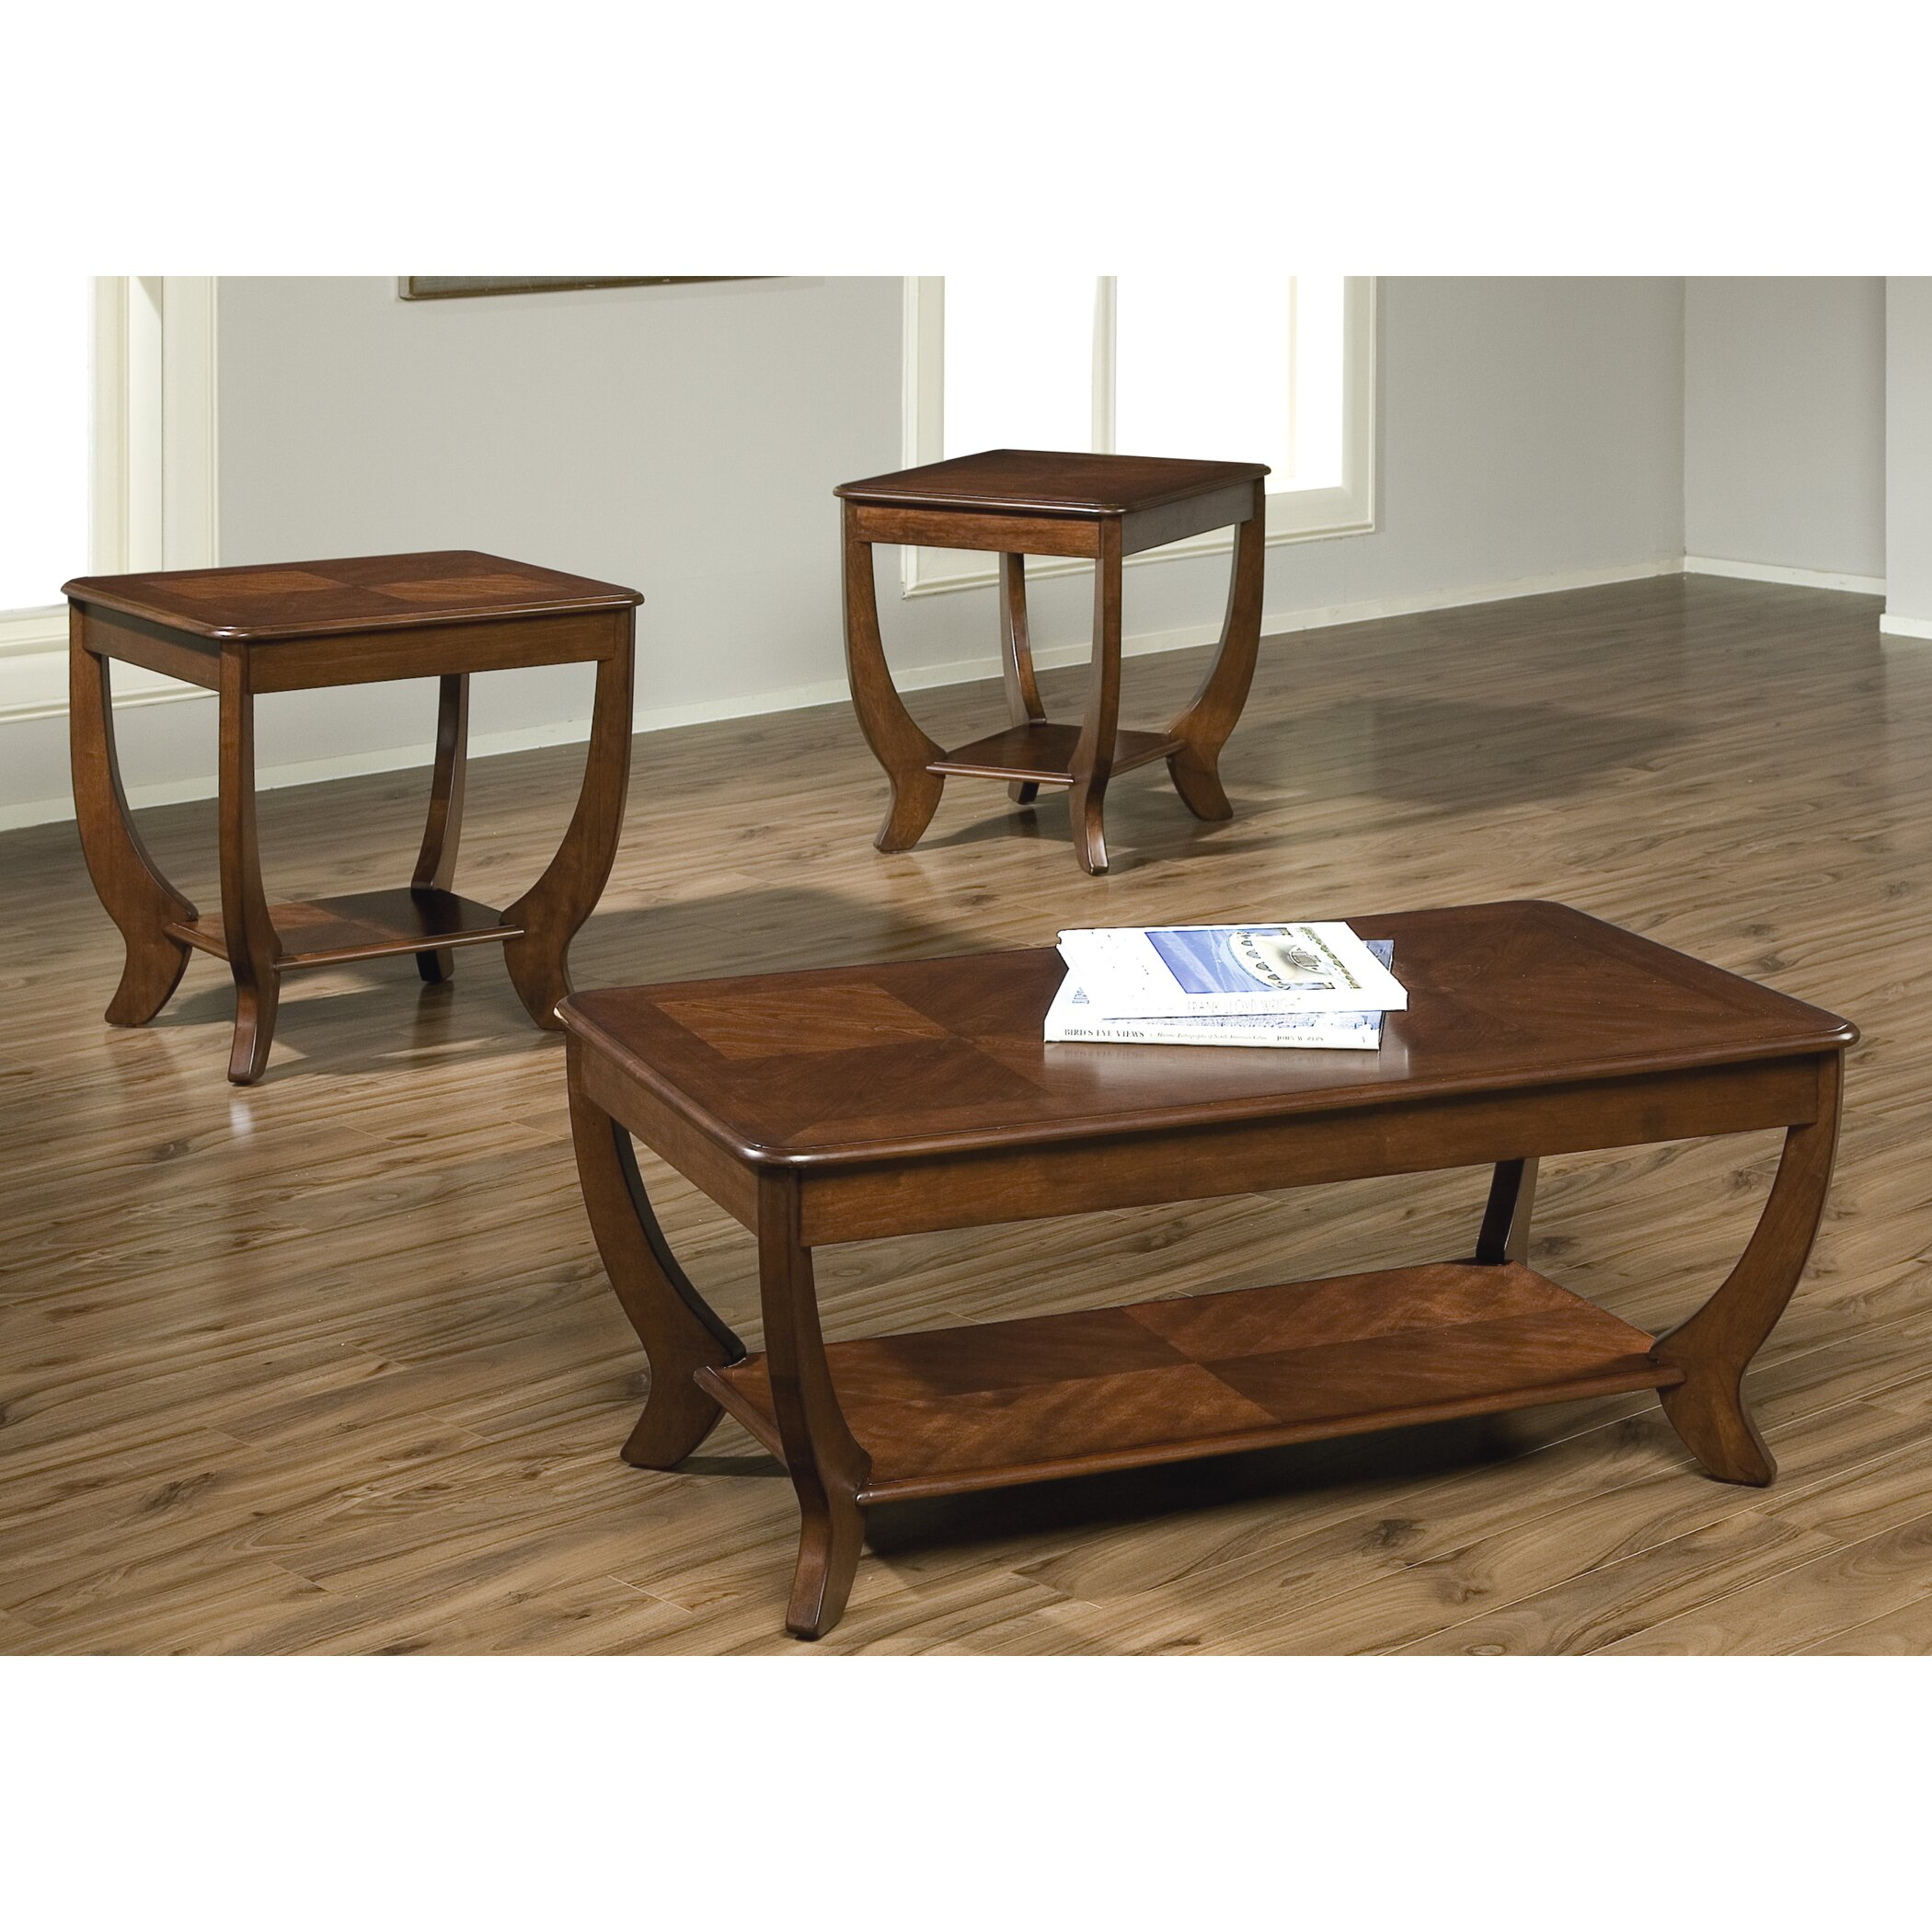 Rosalind wheeler pettigrew 3 piece coffee table set reviews wayfair 3 set coffee tables